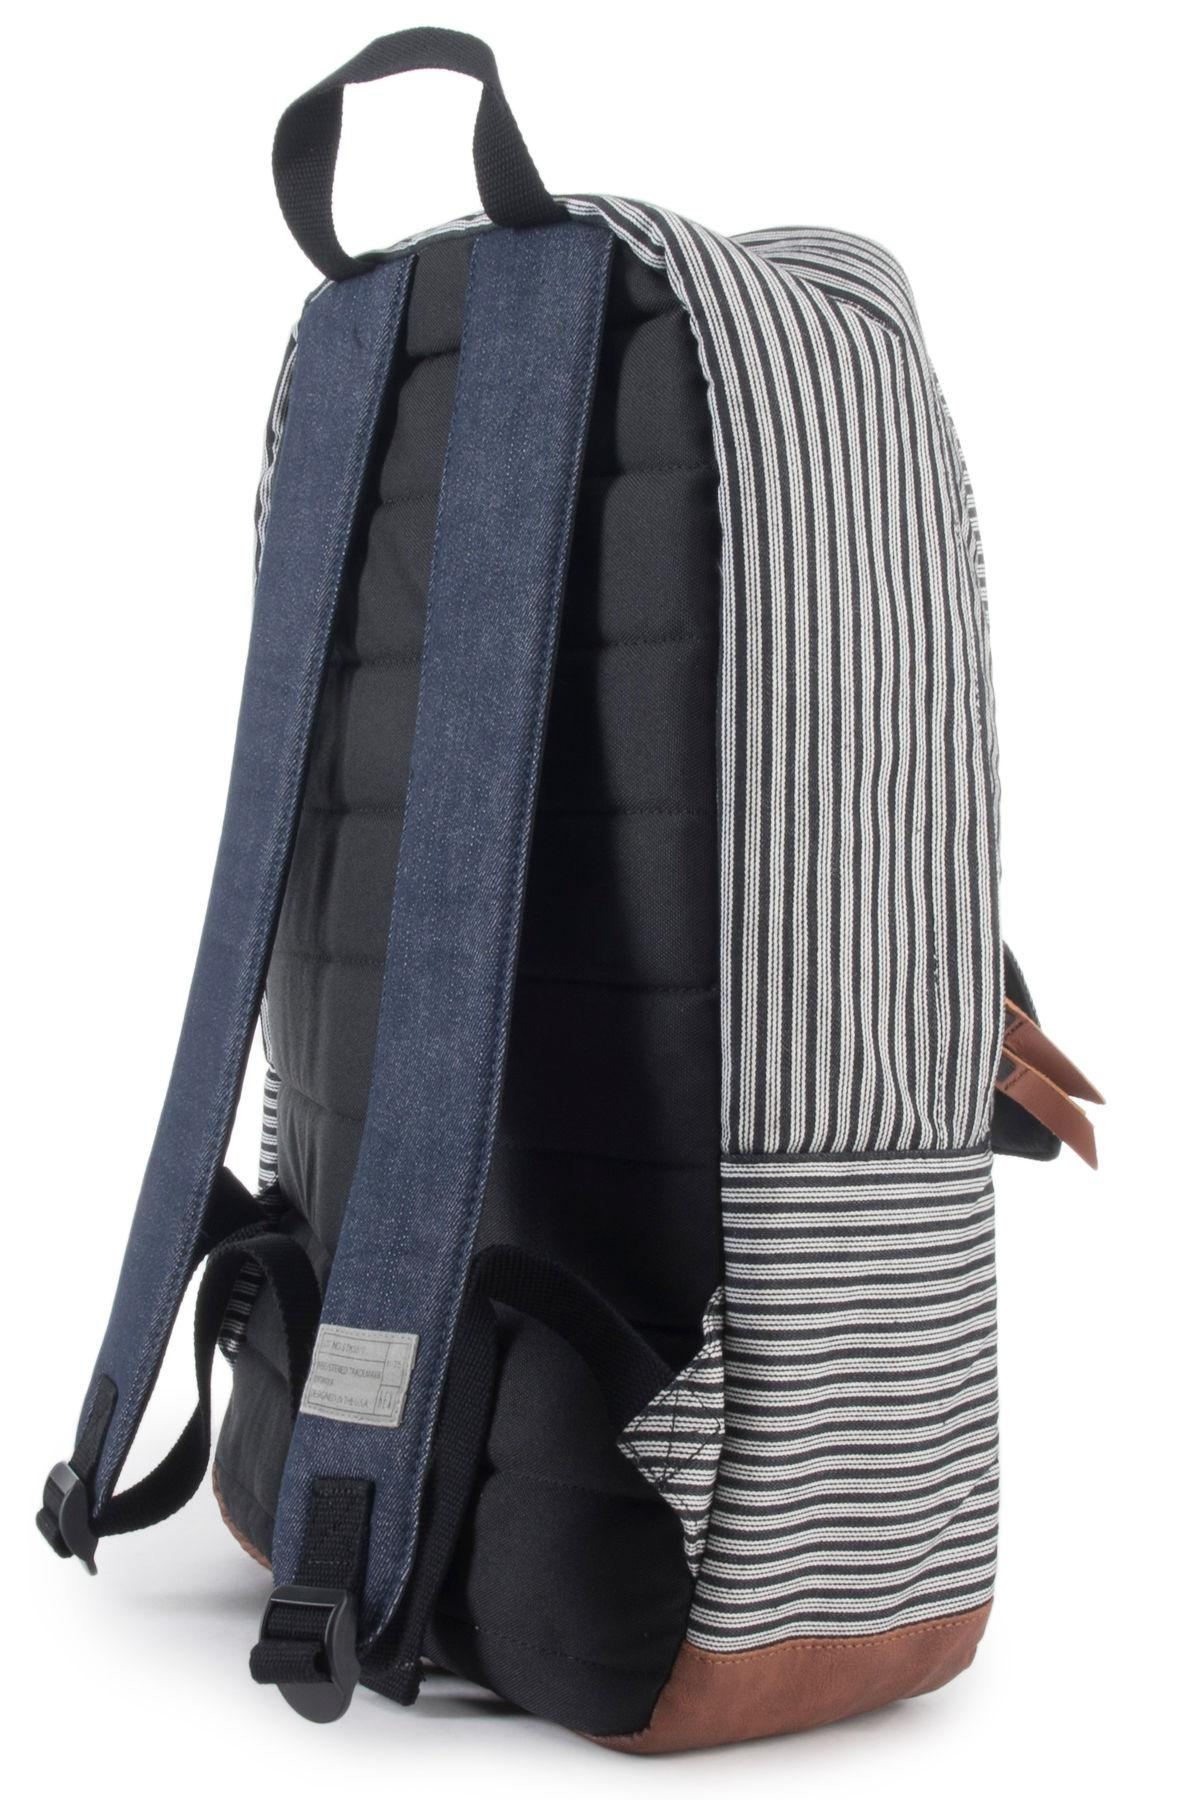 Backpack Hex Stripe Blue Lyst The And Echo Denim Stinson In in aOtZ7nO